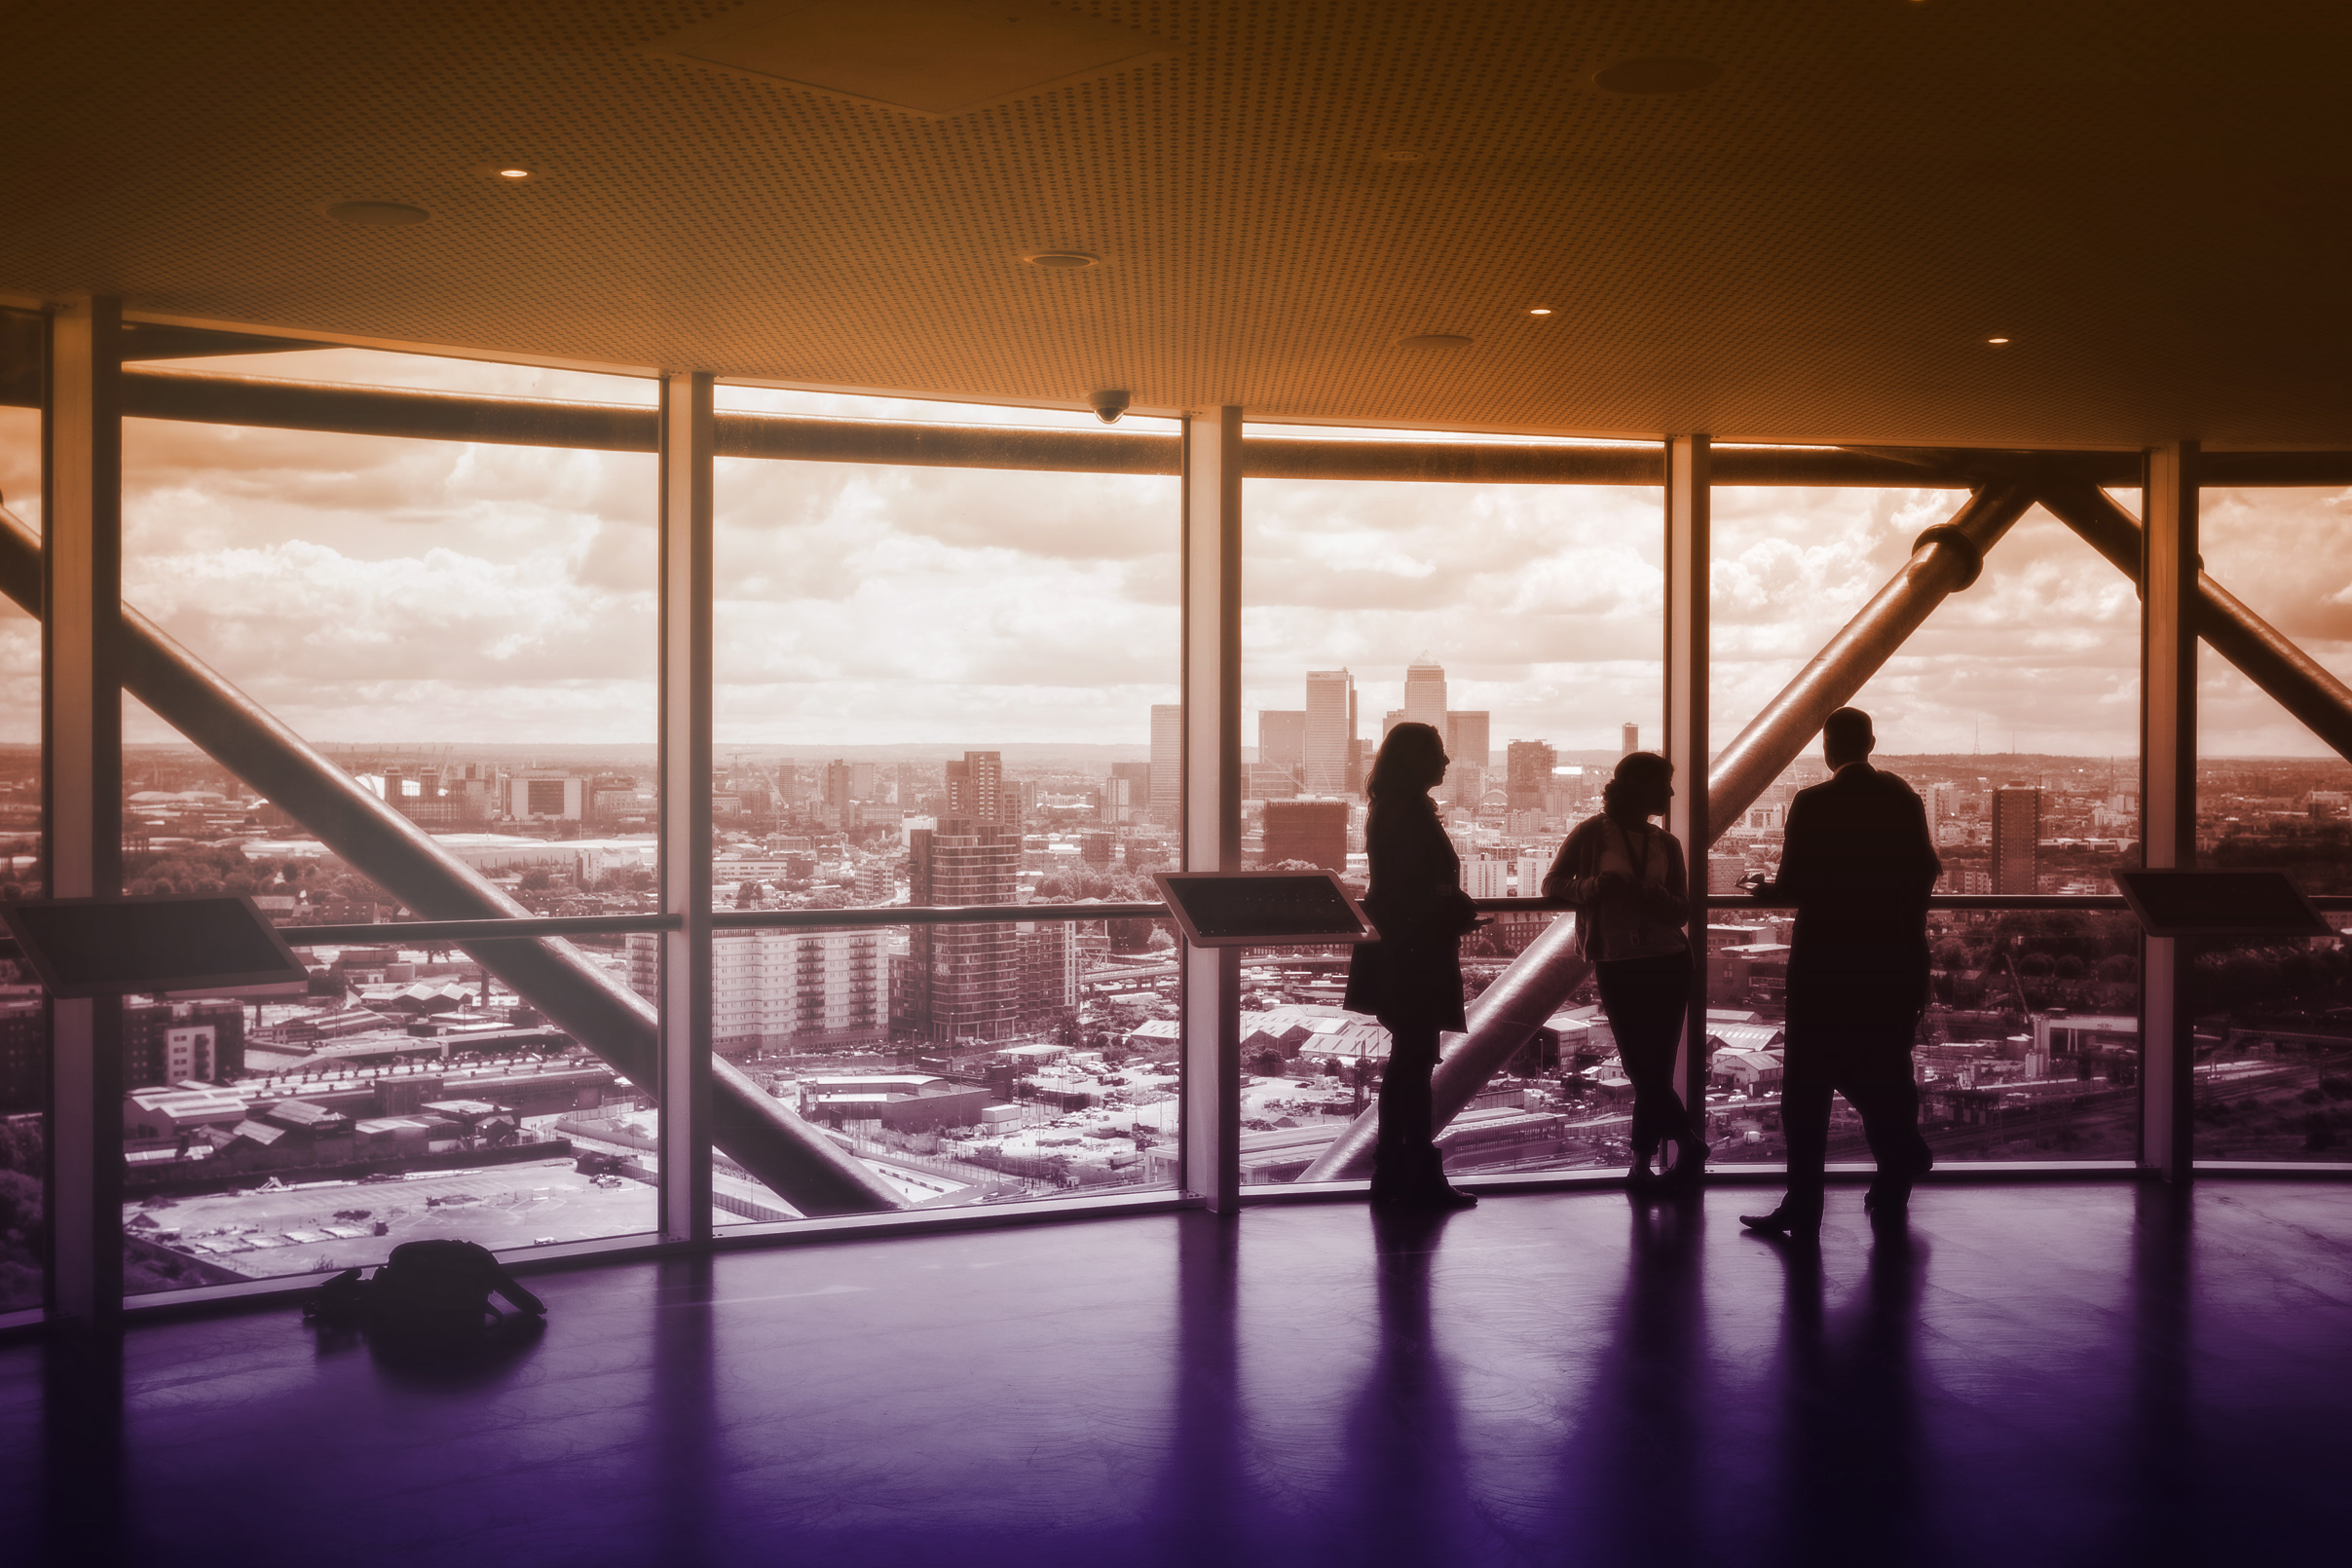 People enjoying the view and discussing business photo